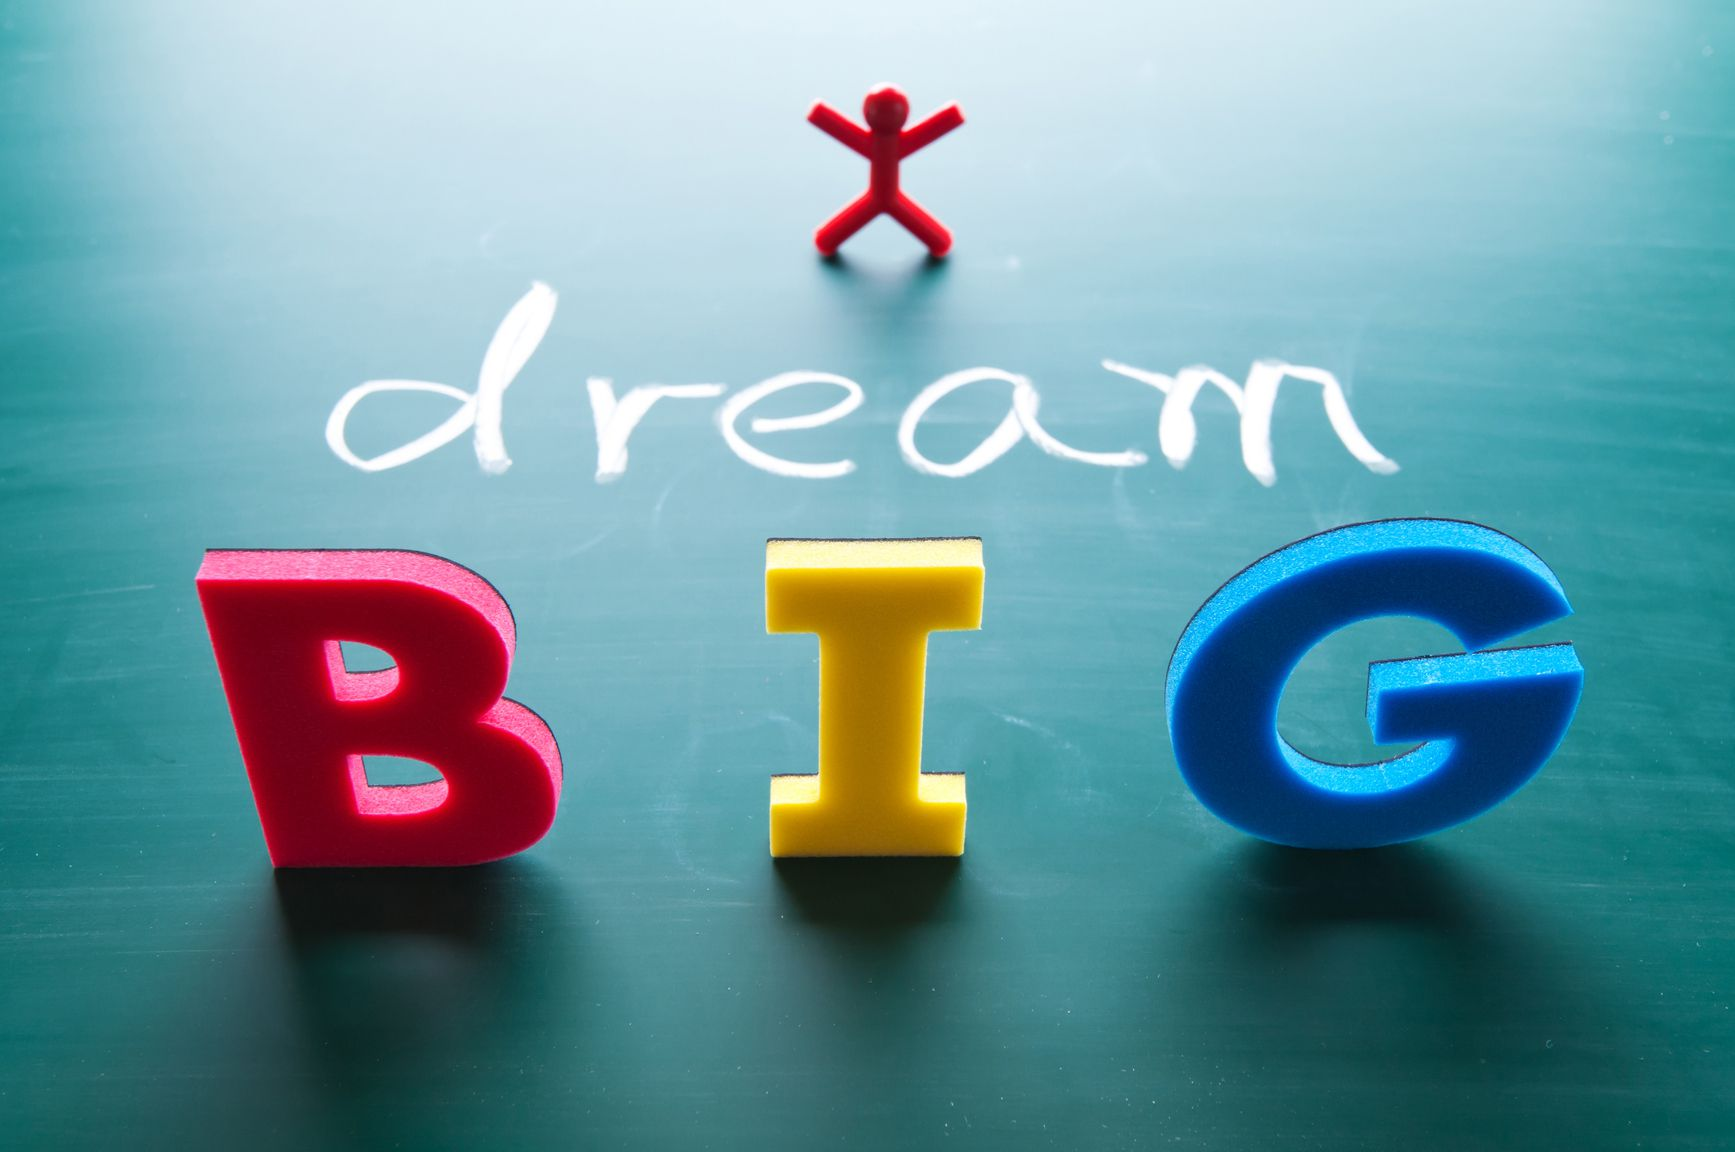 dream big, 思考、梦想时间, jcu chinese speaking students